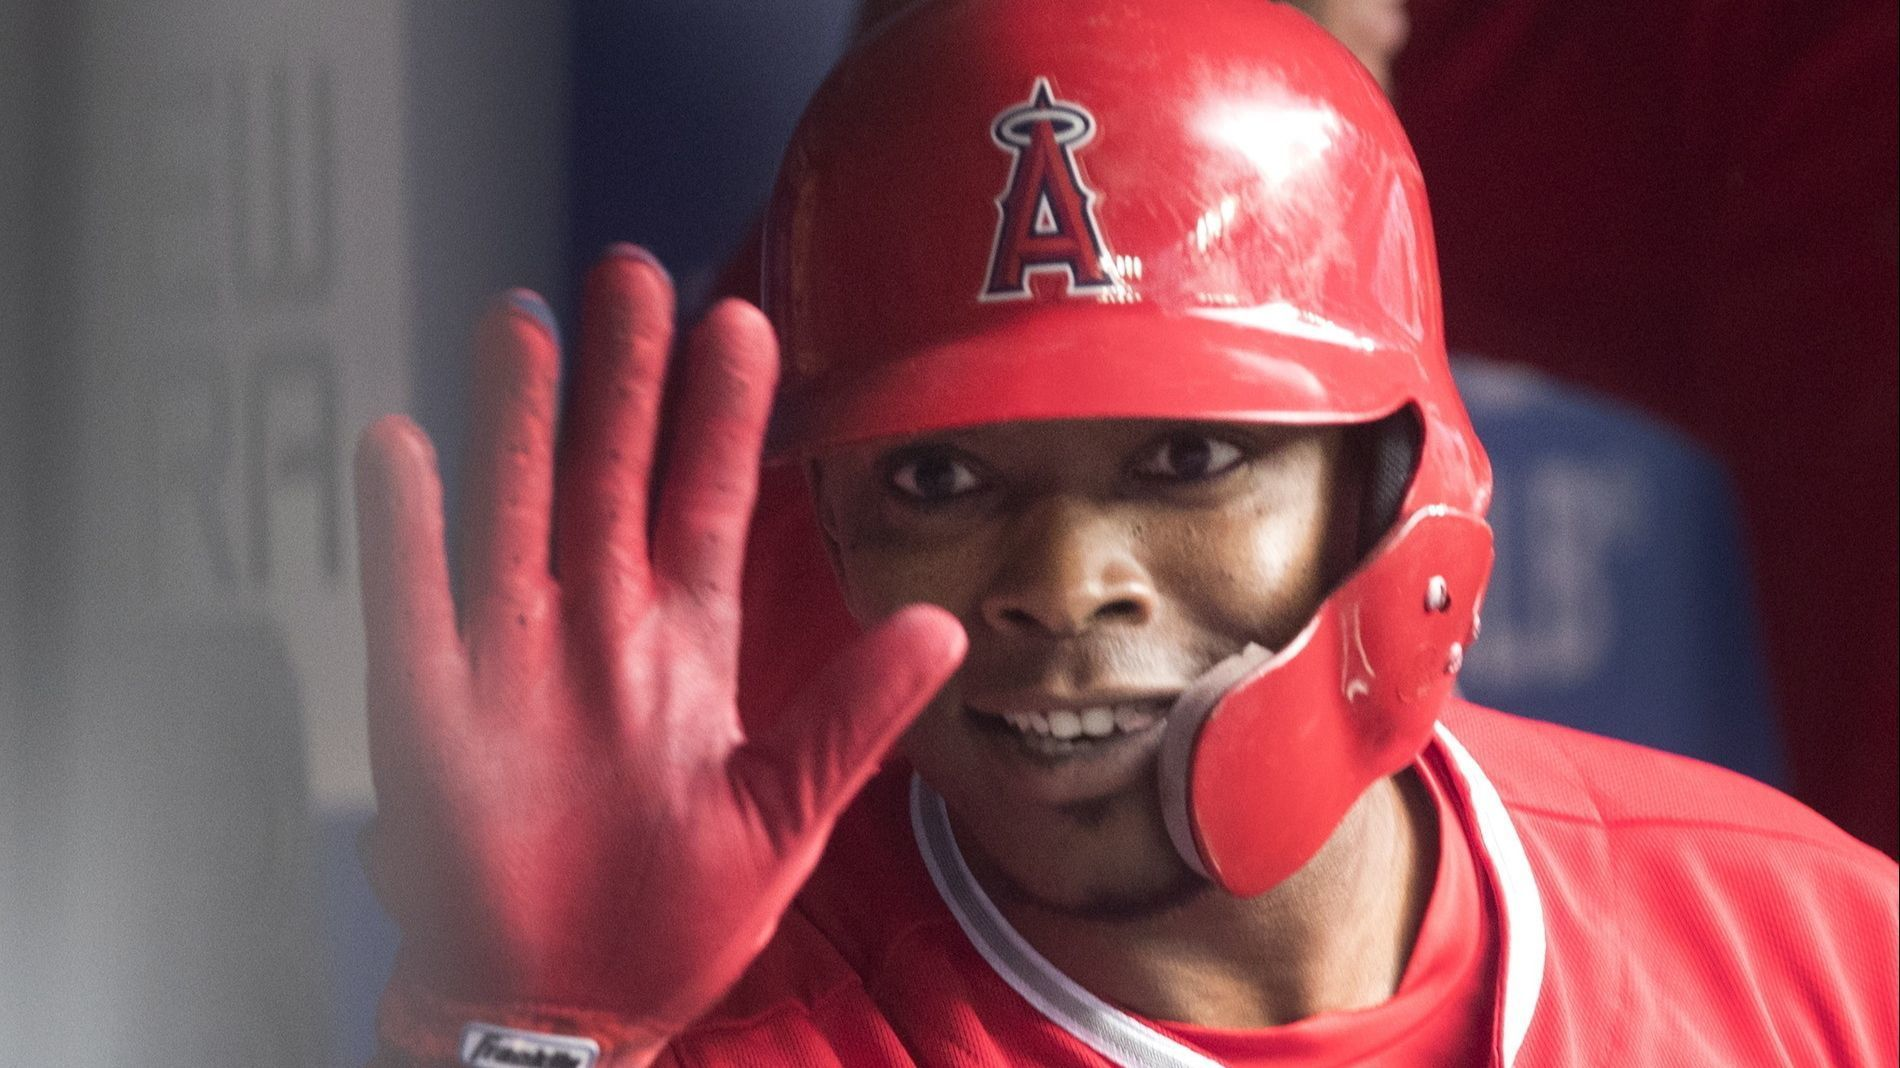 Justin Upton rejoins Angels after long injury layoff and sparks win over Blue Jays